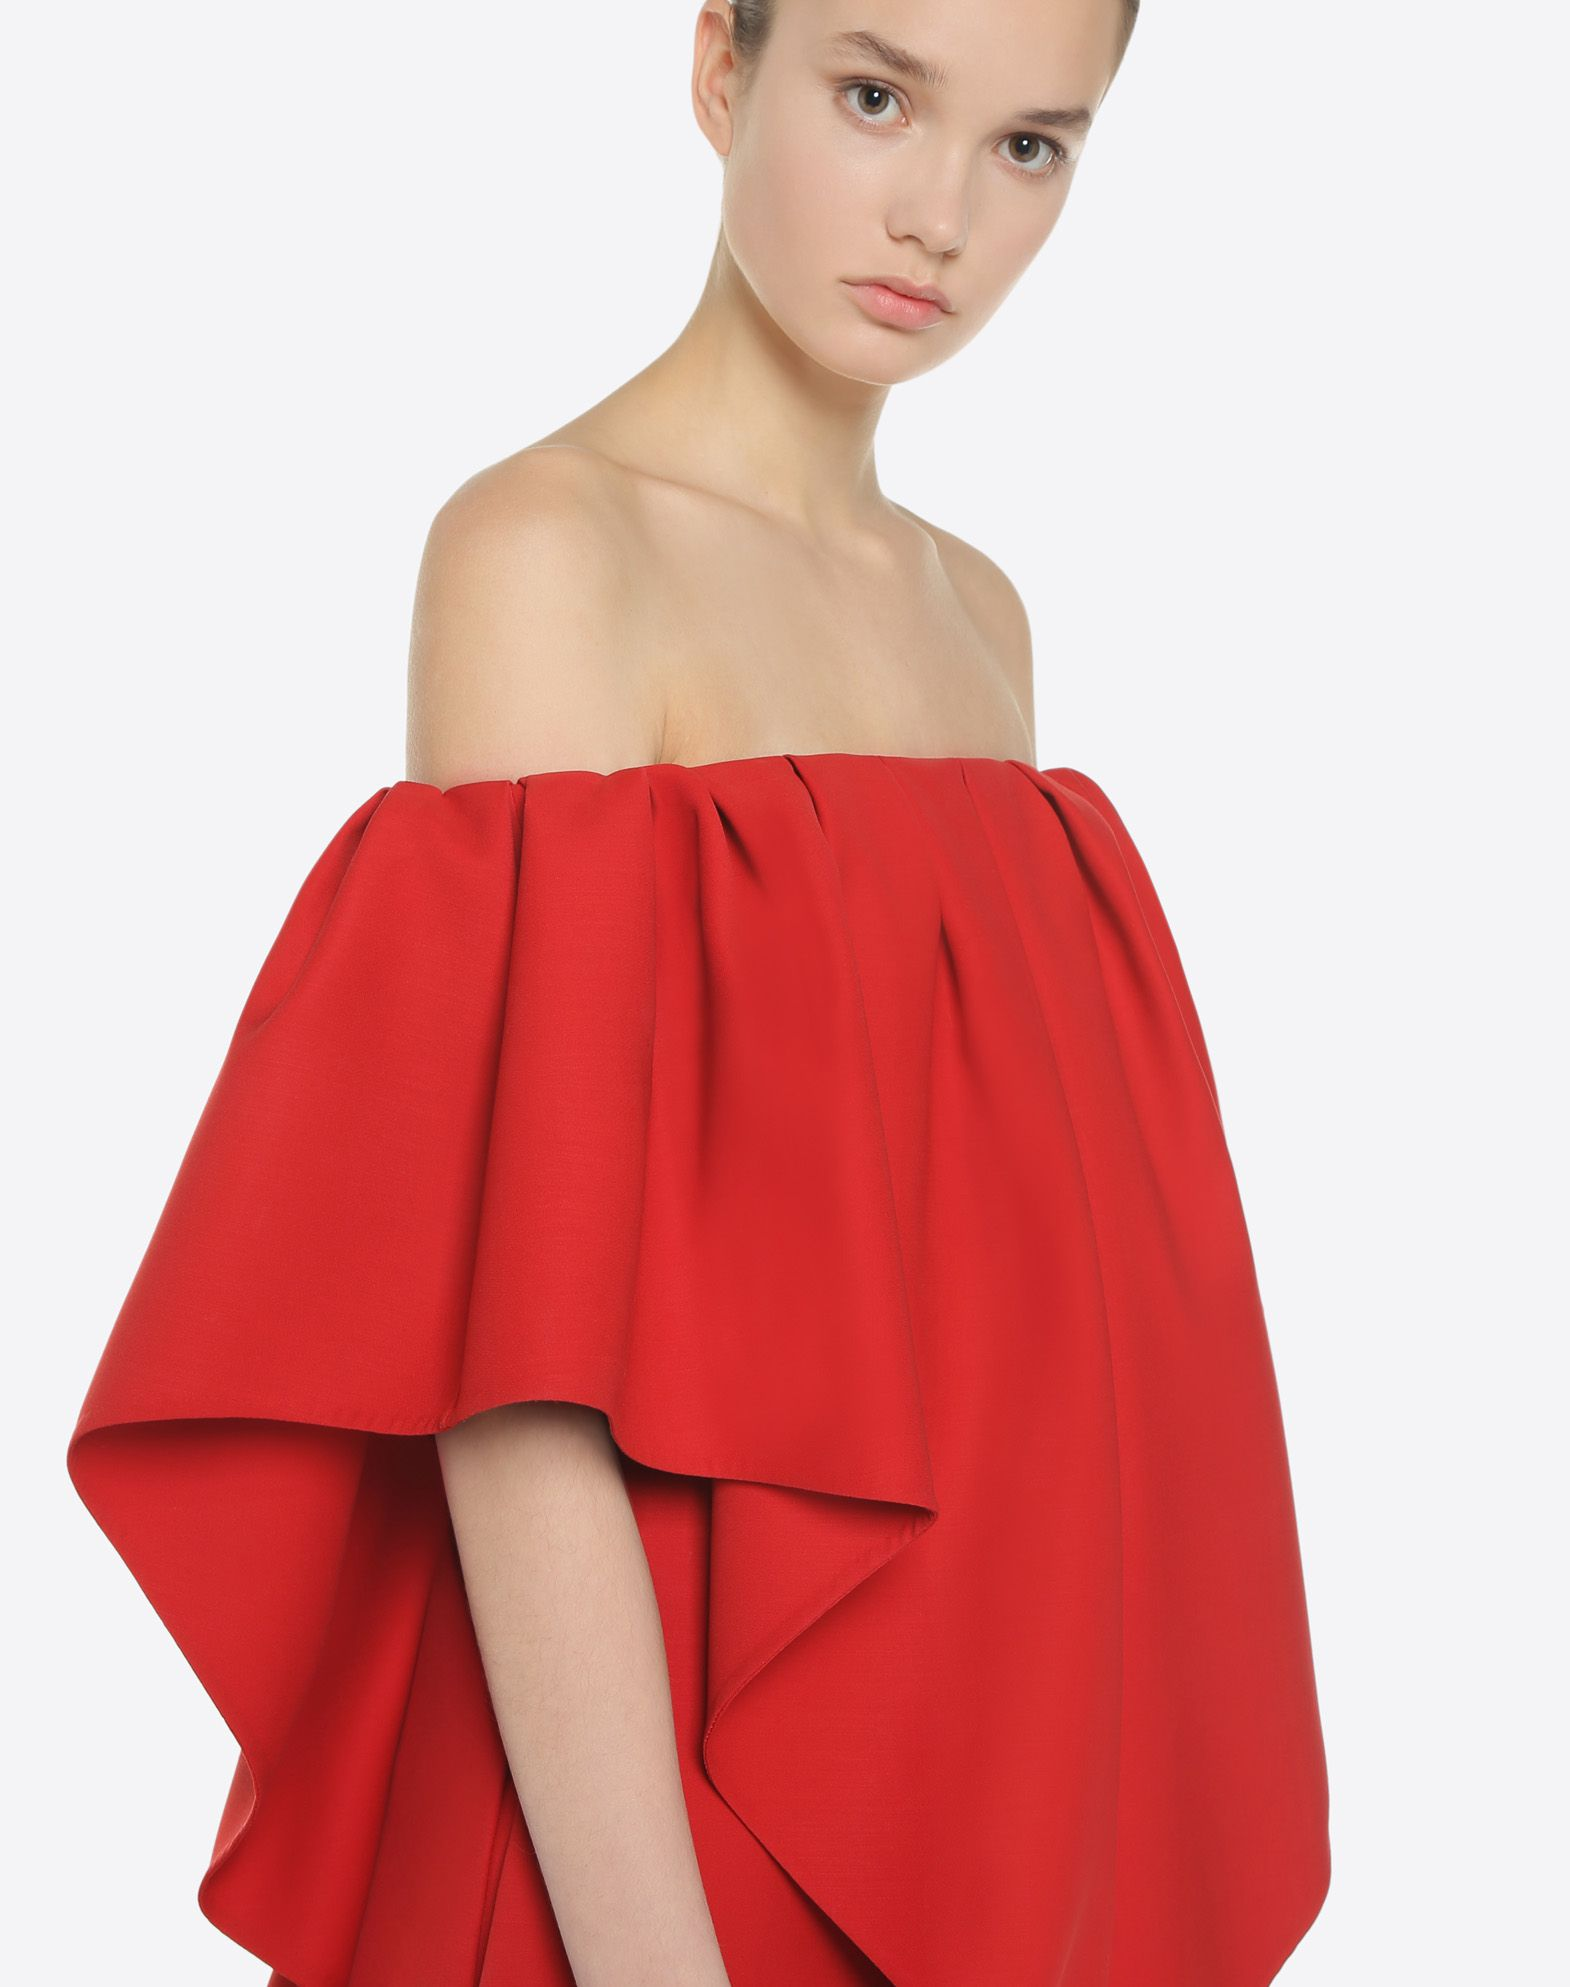 Valentino Very Valentino wool cady dress Sale Countdown Package View Sale Online Discount Release Dates Discount Visit CfFYJa3